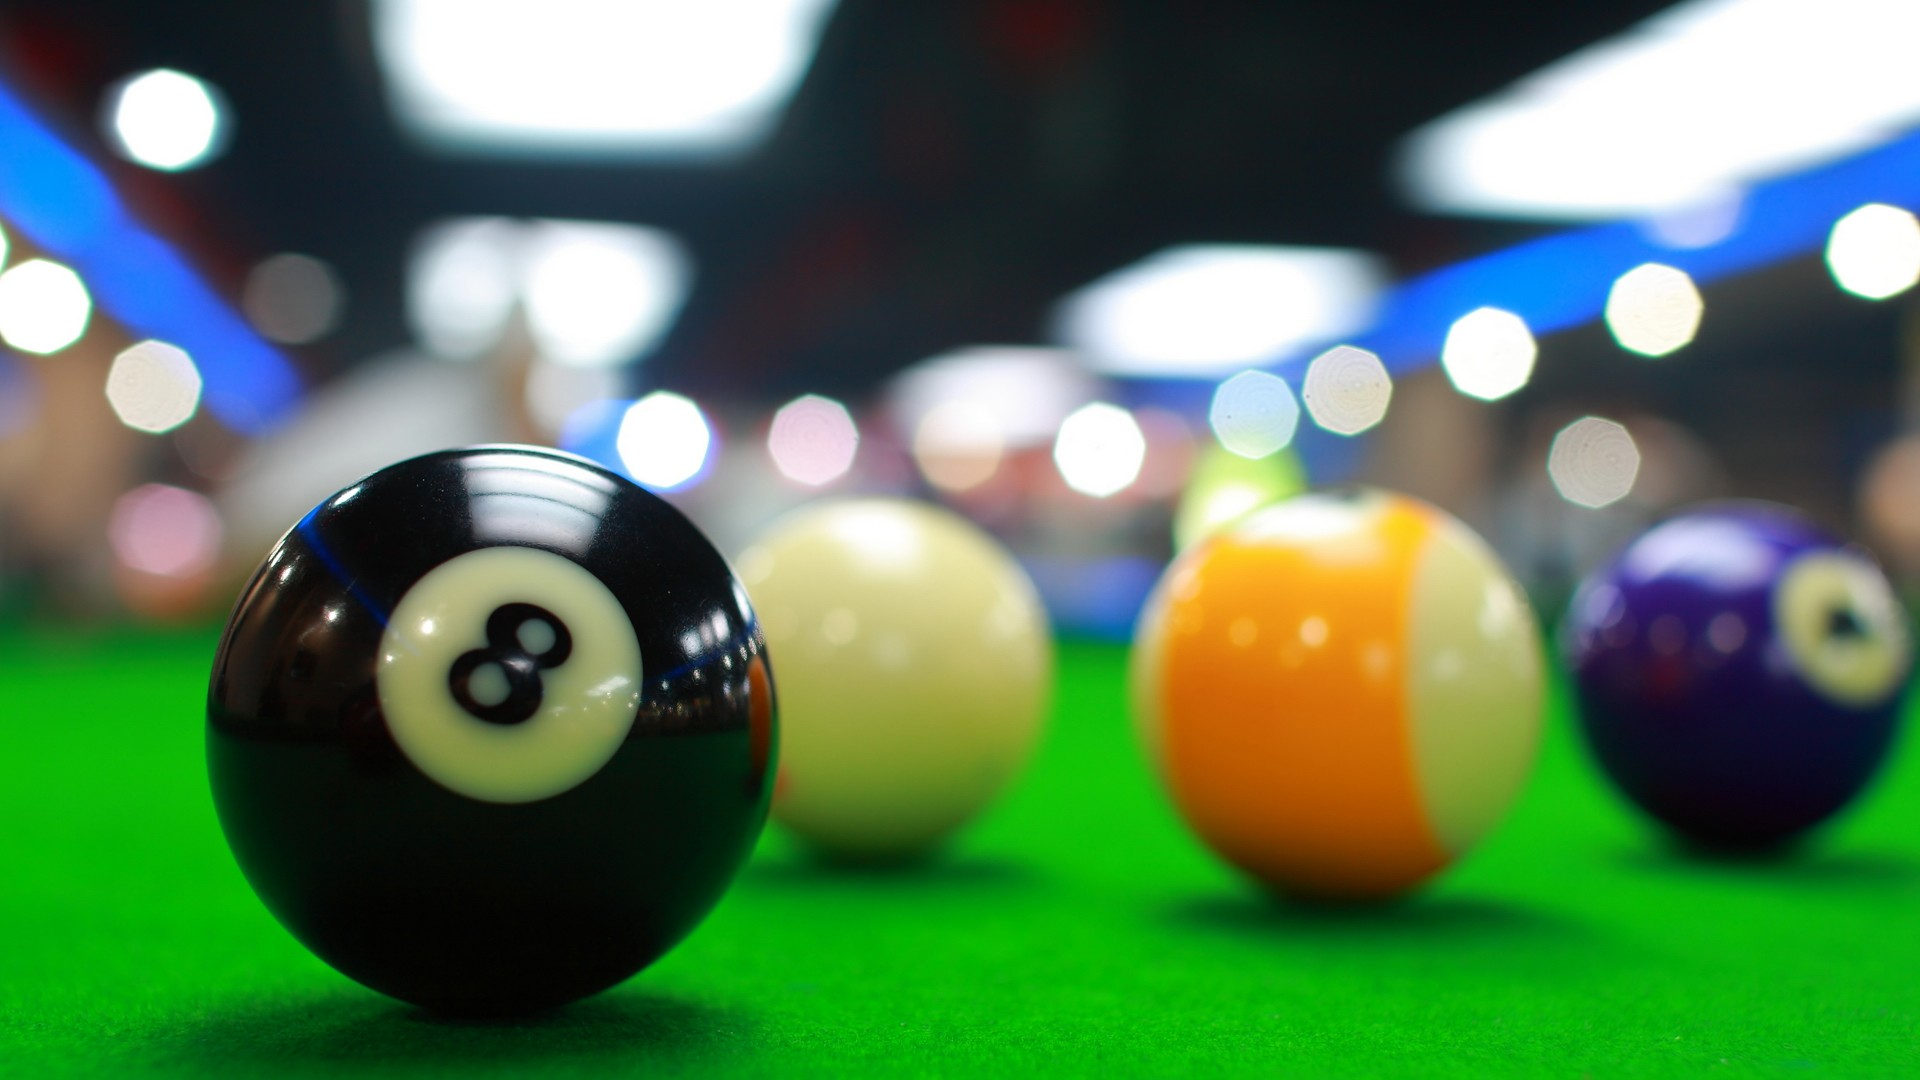 Billiards Wallpaper